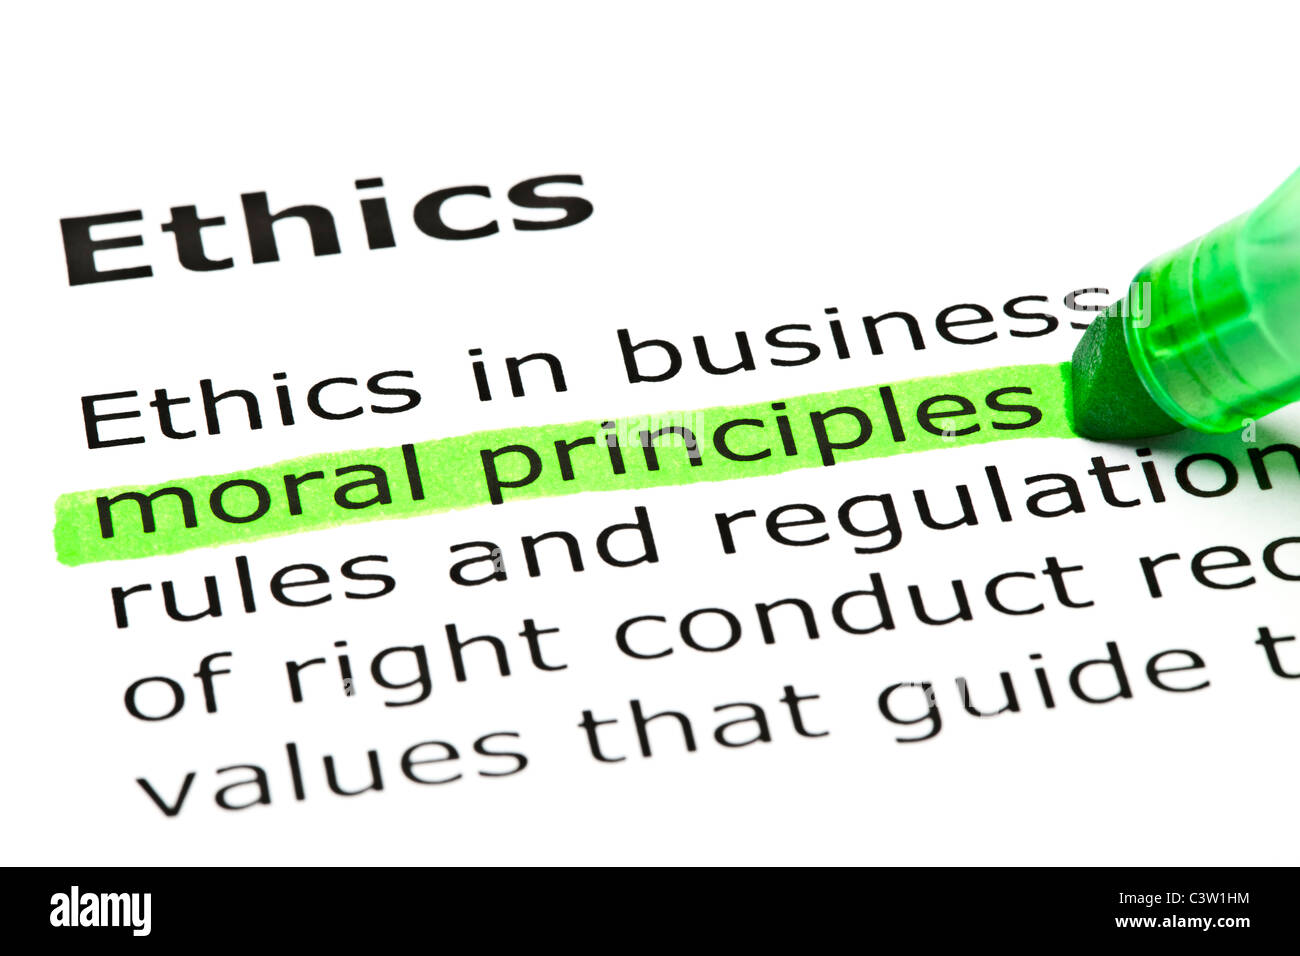 'Moral principles' highlighted in green, under the heading 'Ethics' - Stock Image